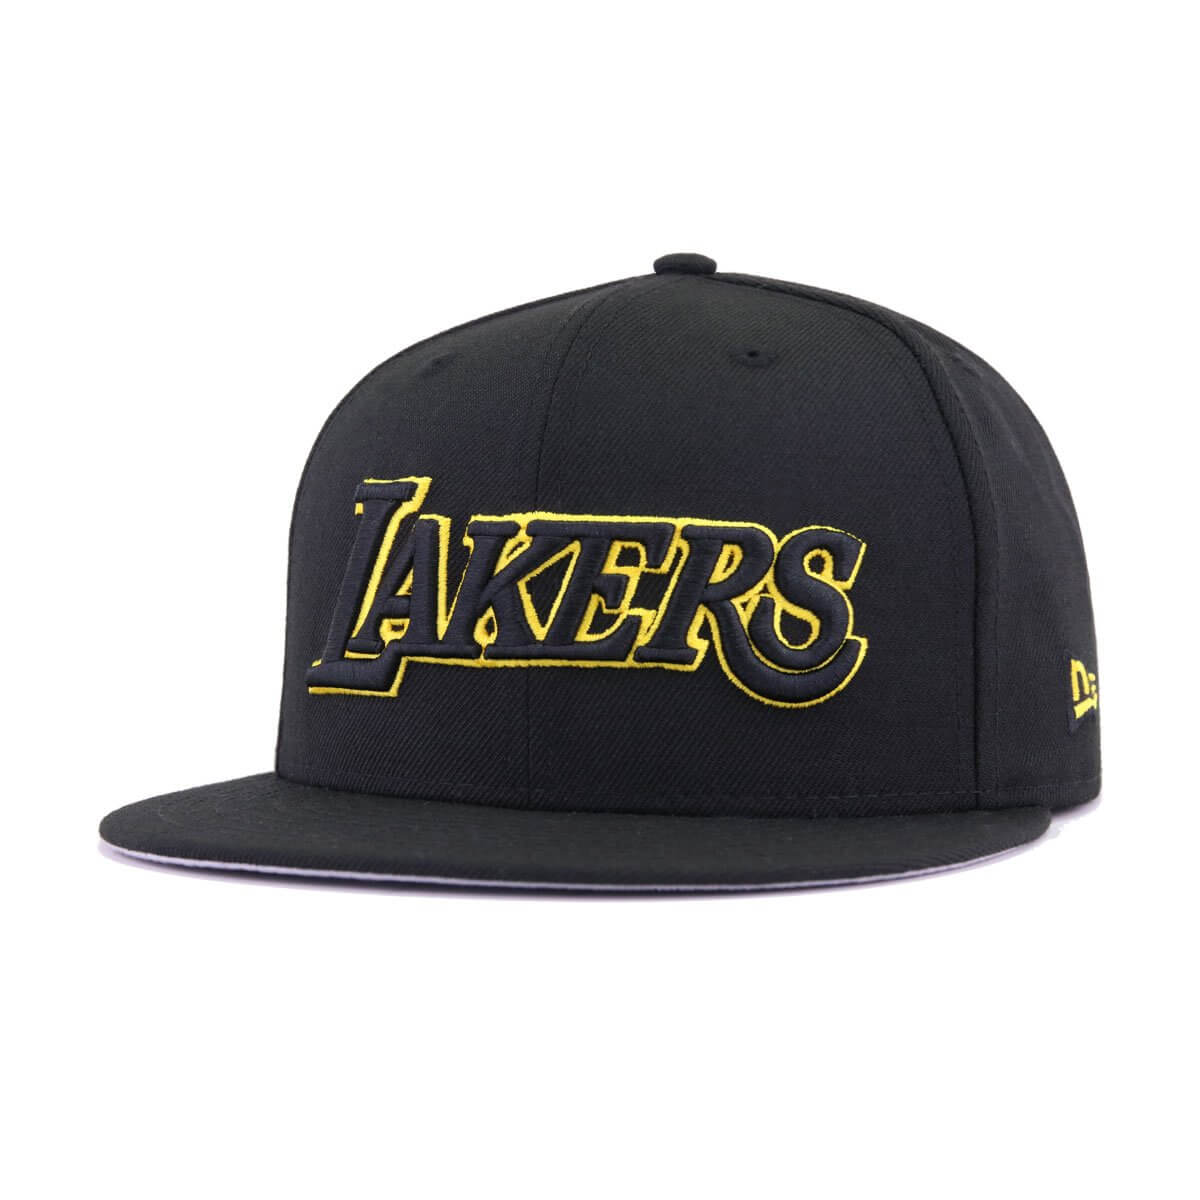 a0047689d14 Los Angeles Lakers Black Manila City Series New Era 59Fifty Fitted